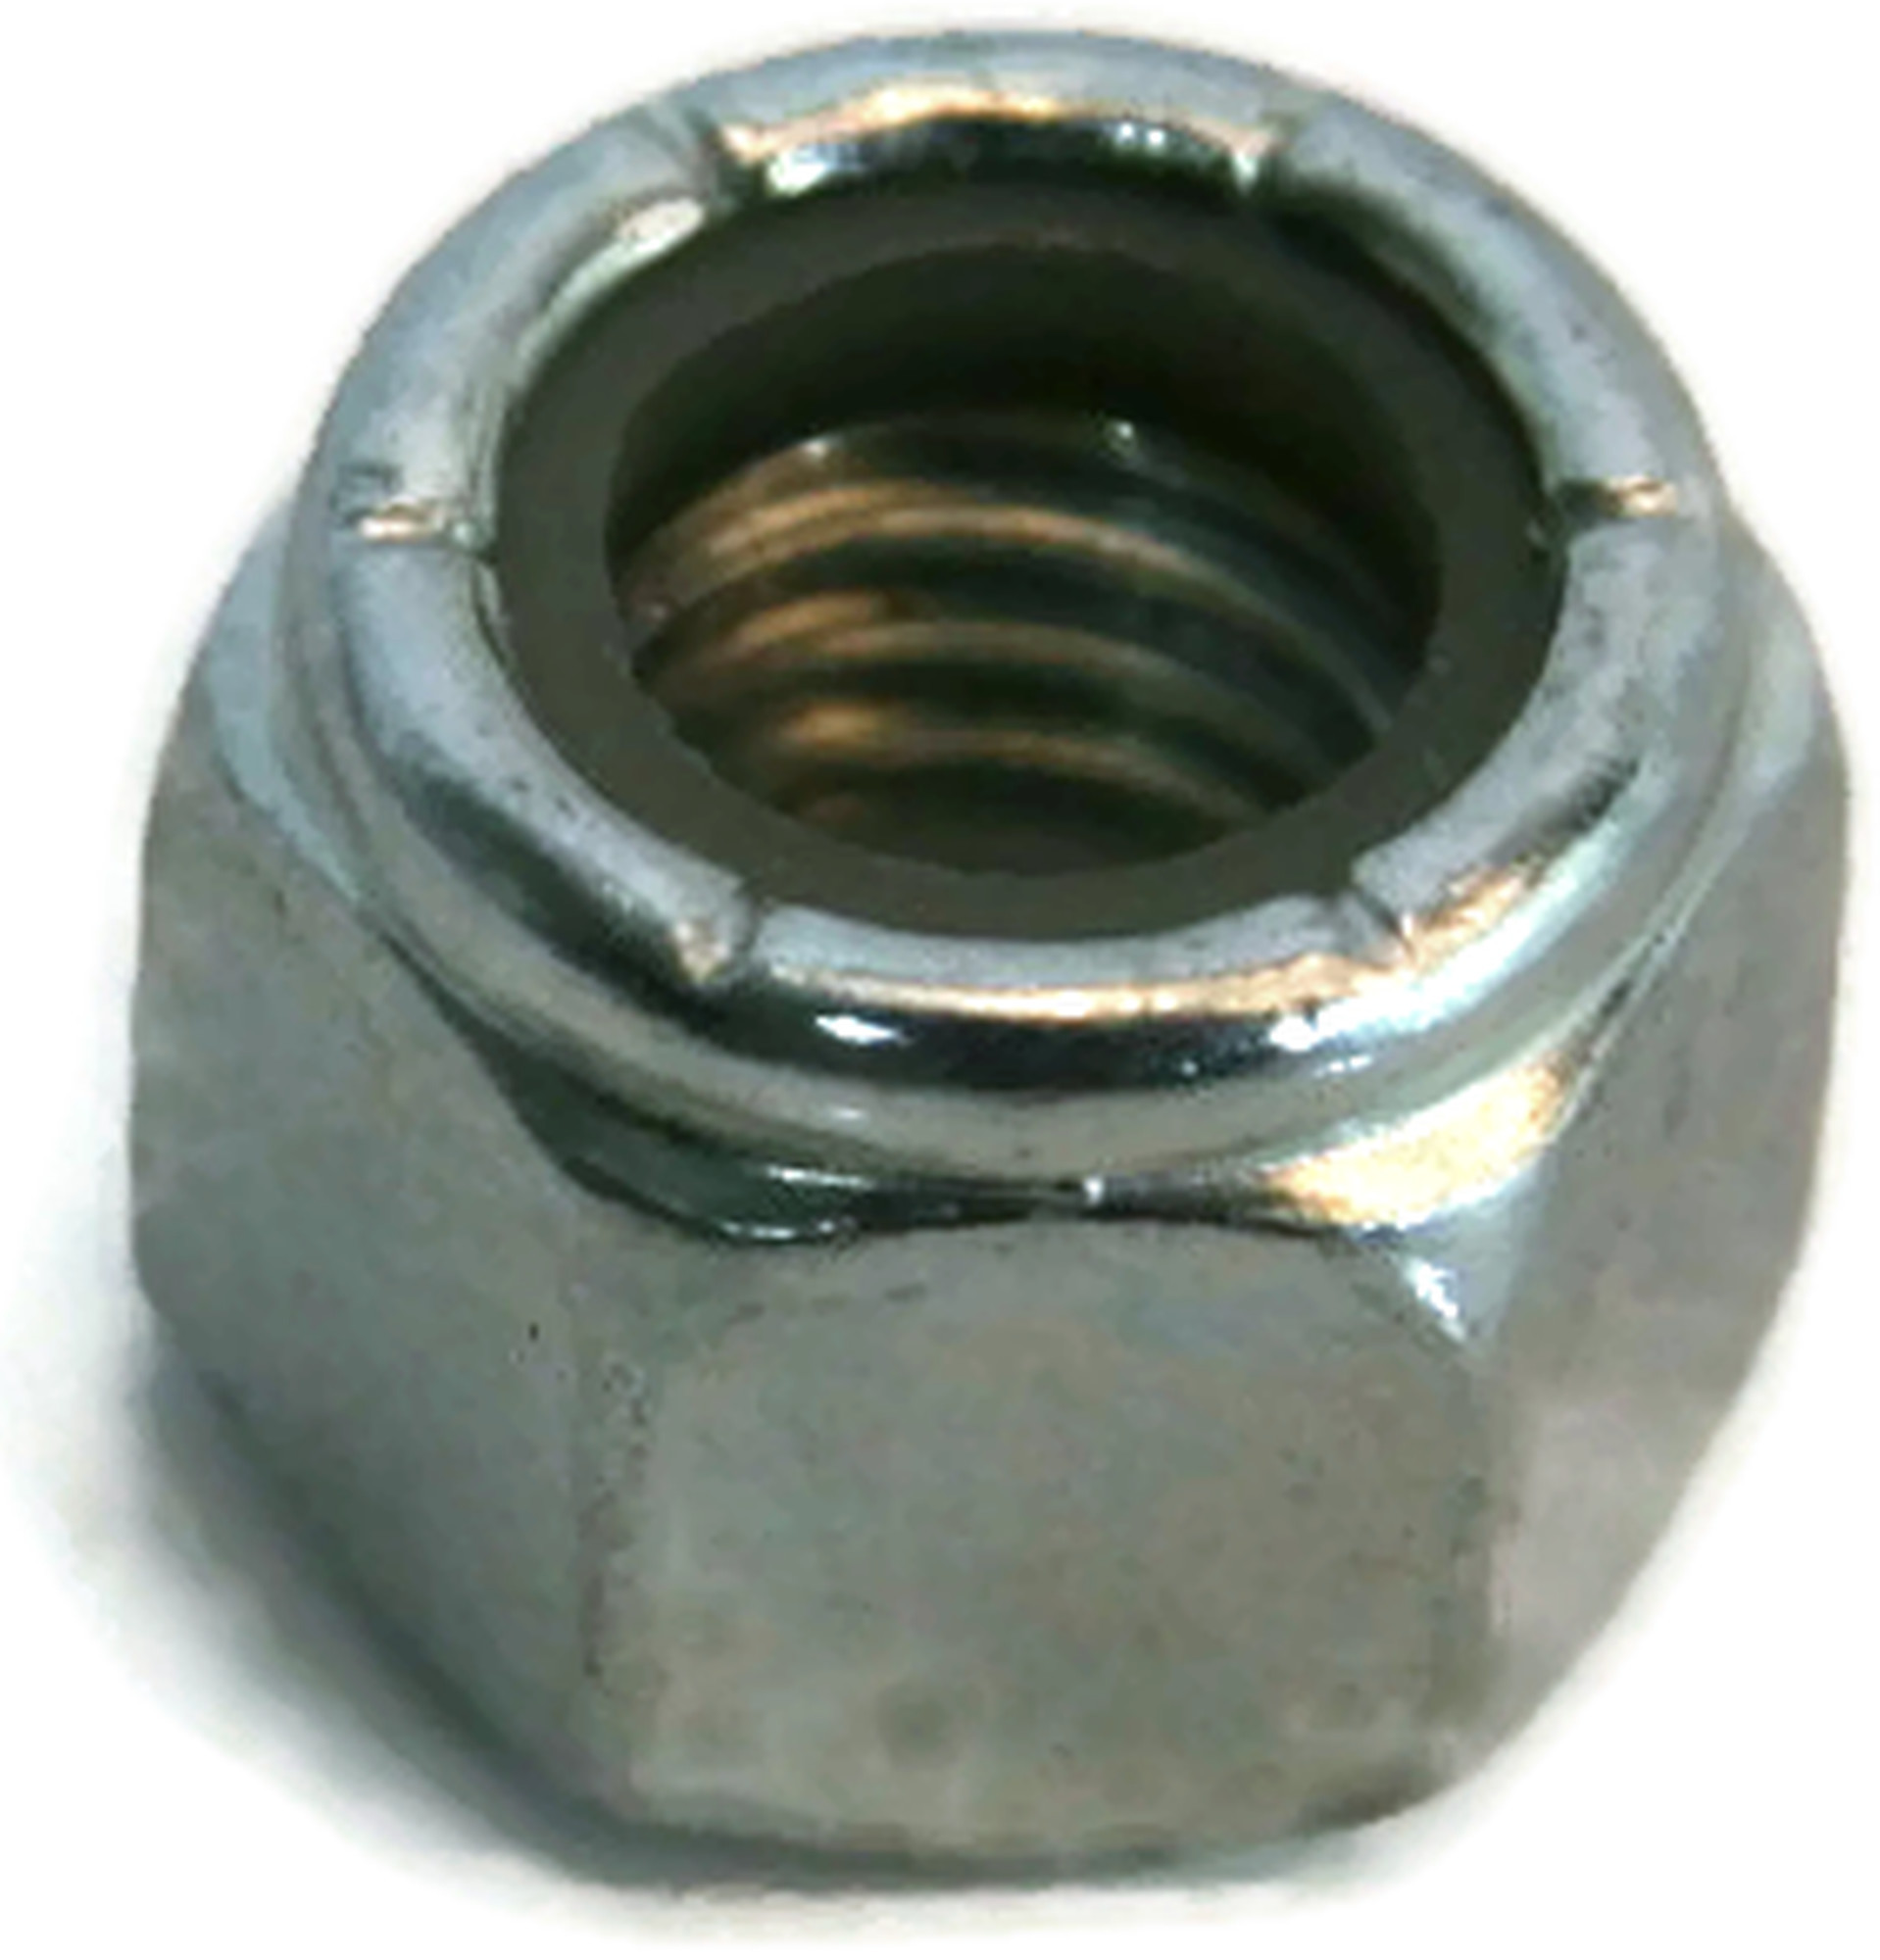 10 pcs 1//2-13 UNC hex nuts Stainless Steel Nut